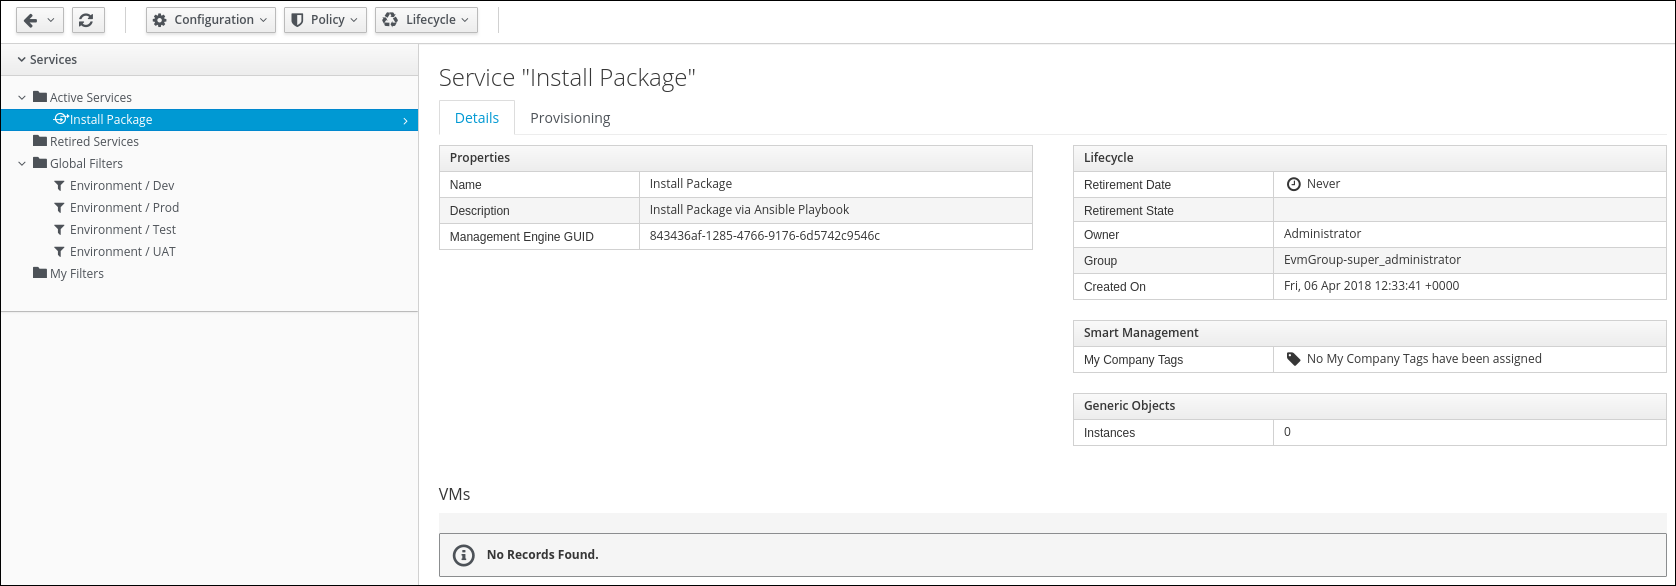 My Service Install Package Details